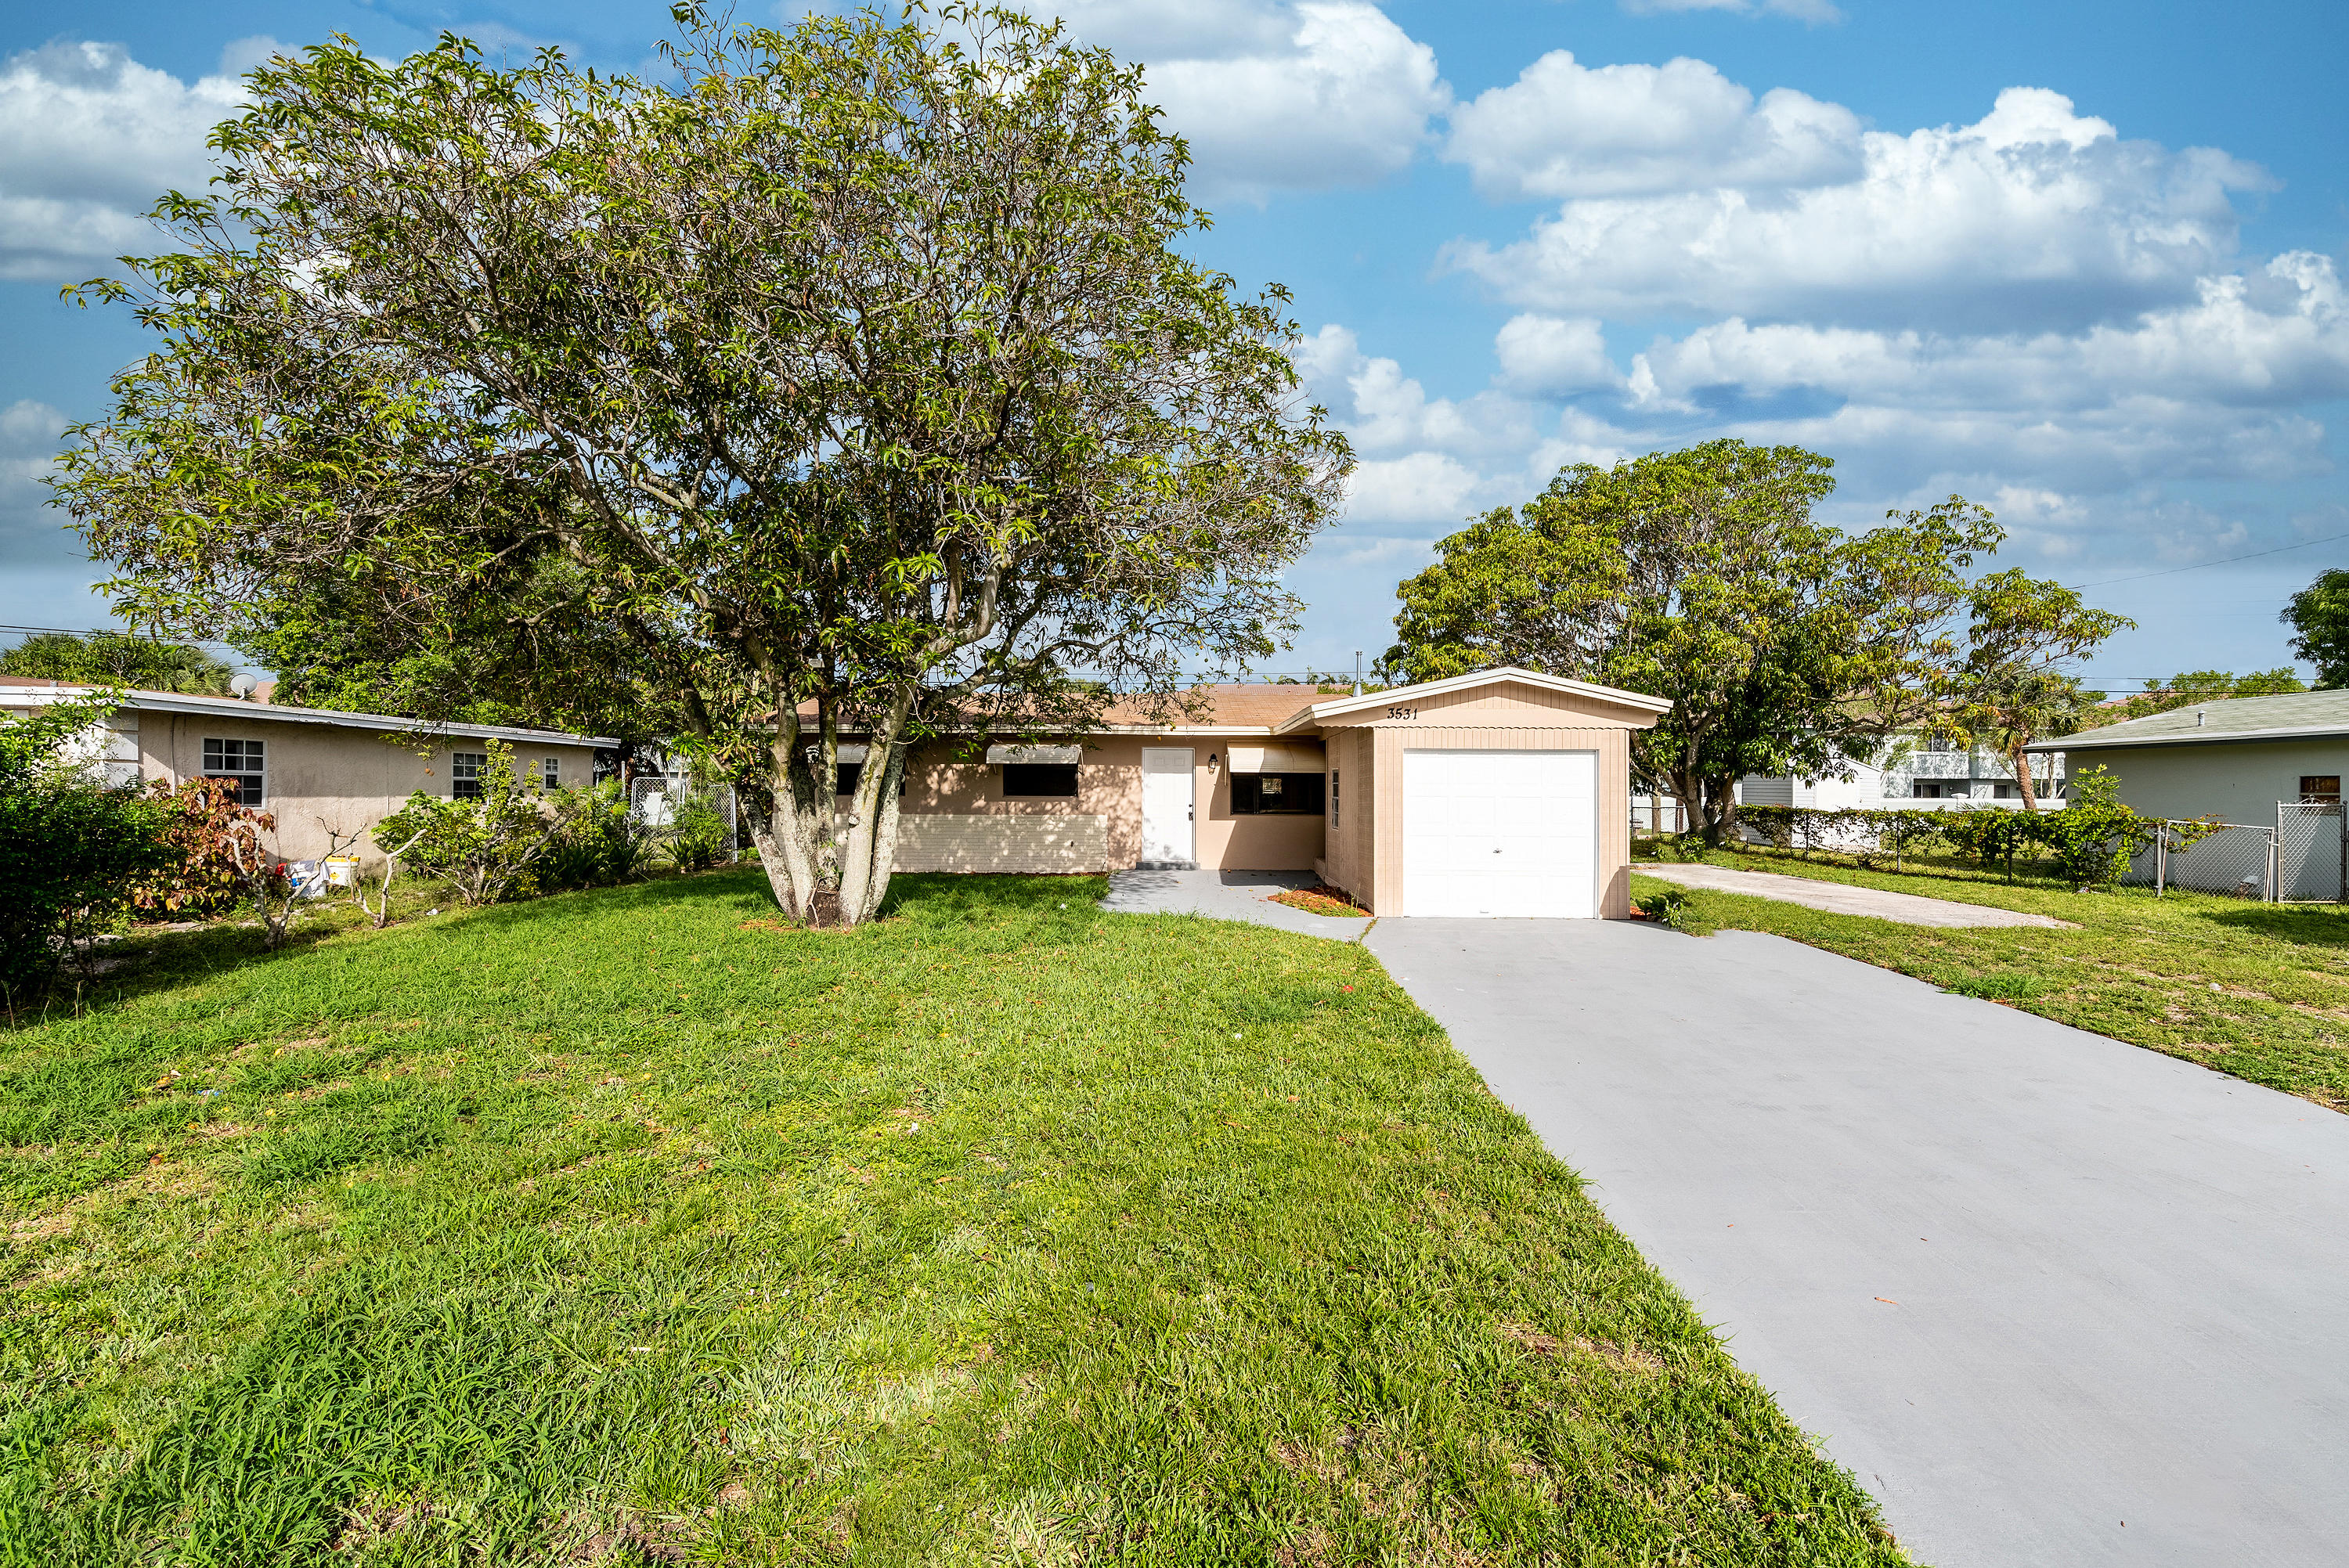 Home for sale in DATURA PARK 2 IN PB 27 PGS 165 AND 166 Riviera Beach Florida